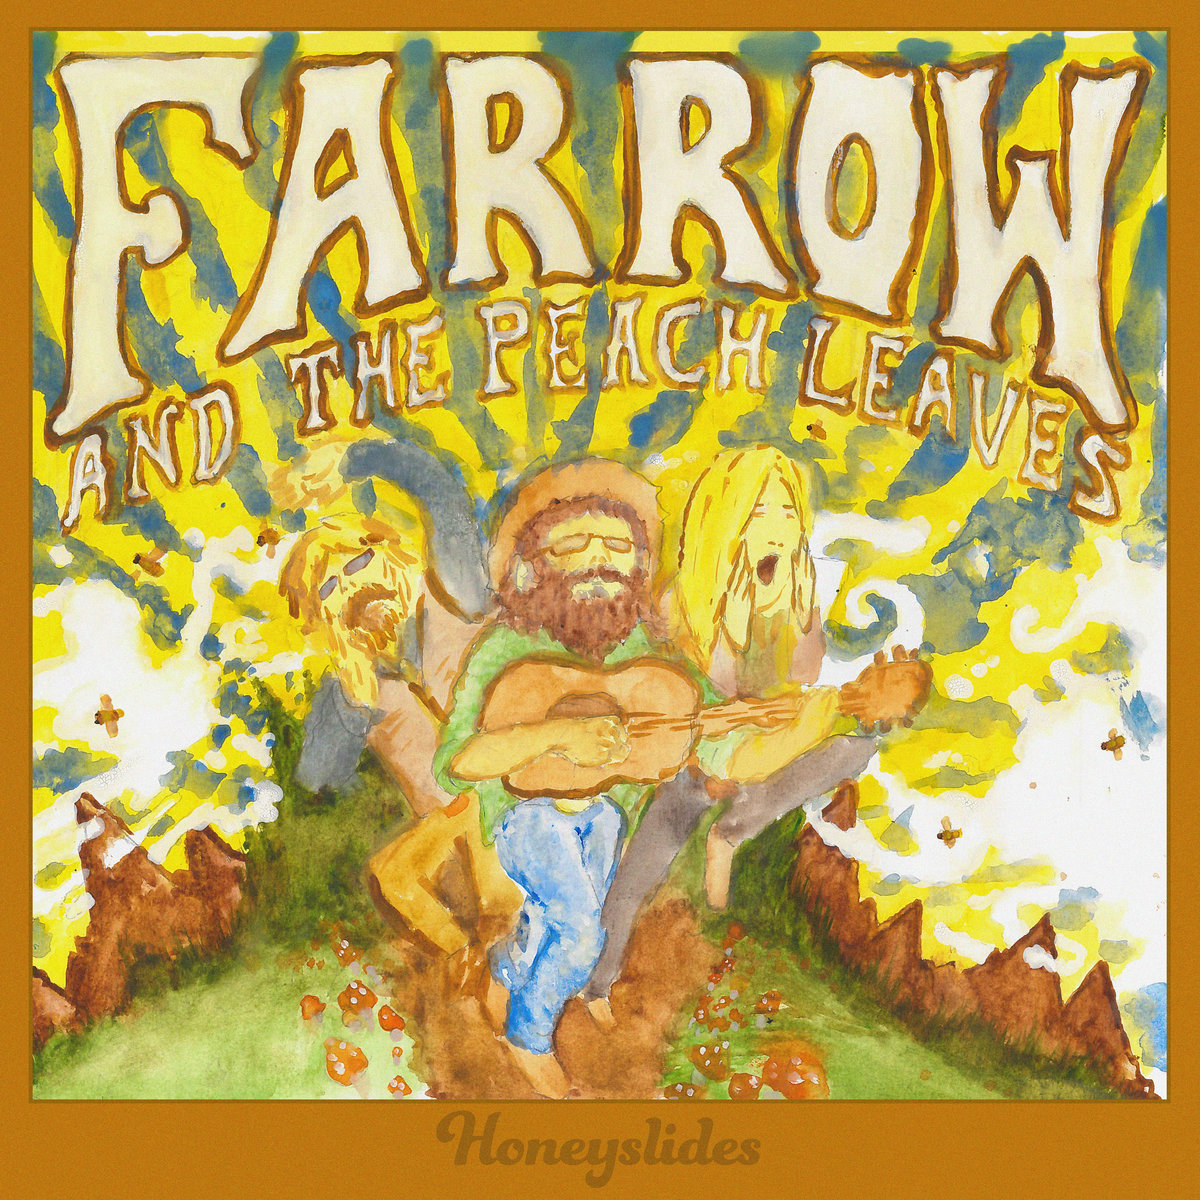 Farrow and the Peach Leaves – Goddamn